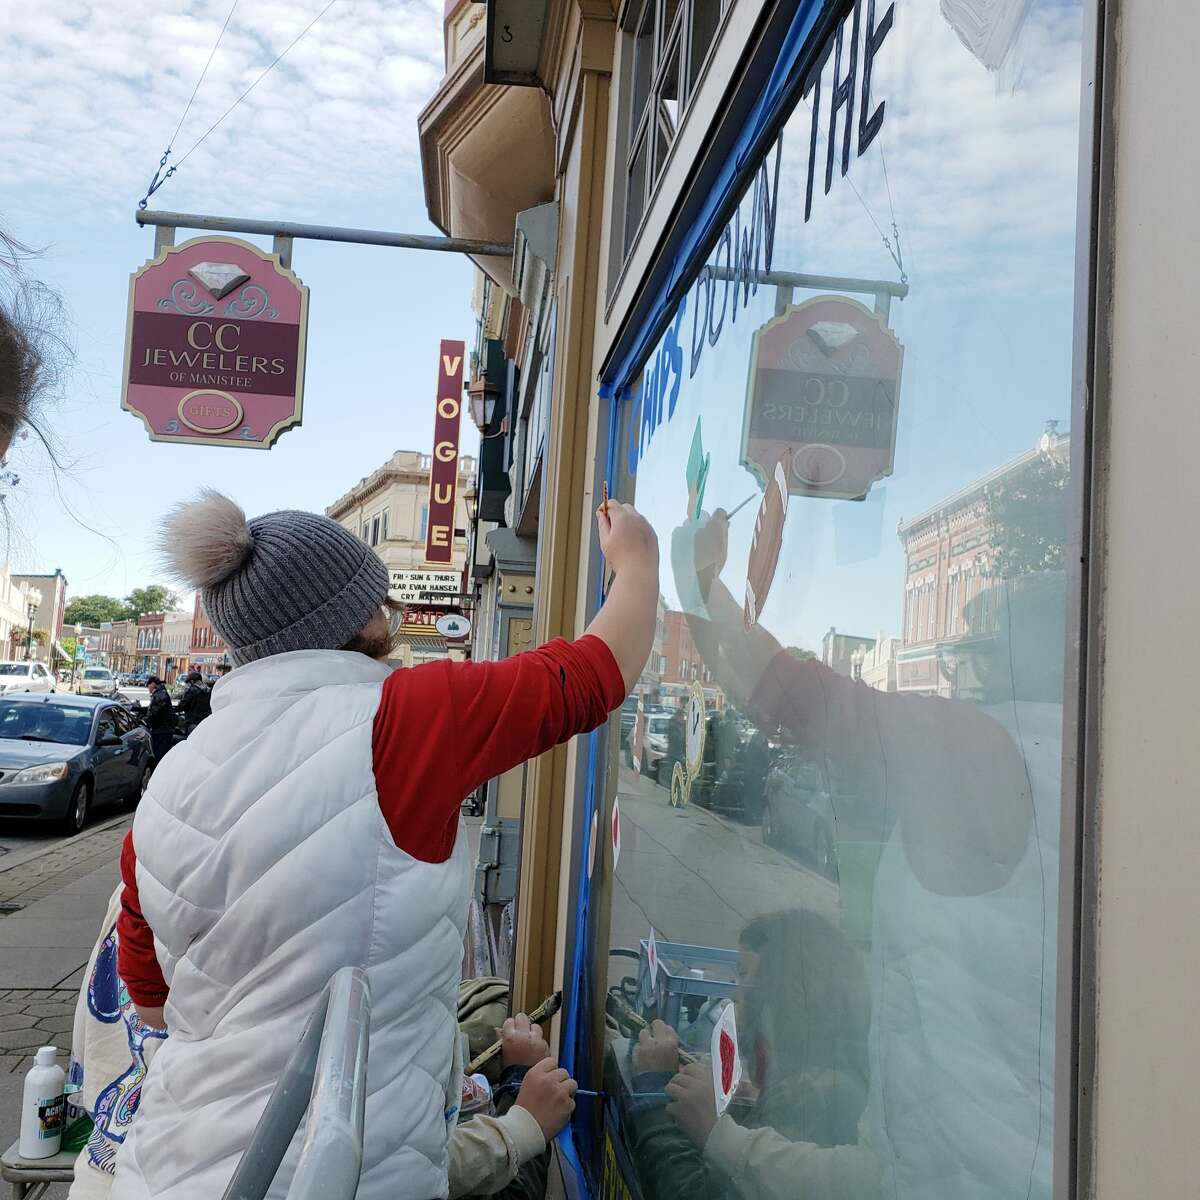 Flynn Anderson works on the Manistee High School freshmen class homecoming window art on Saturday on River Street.